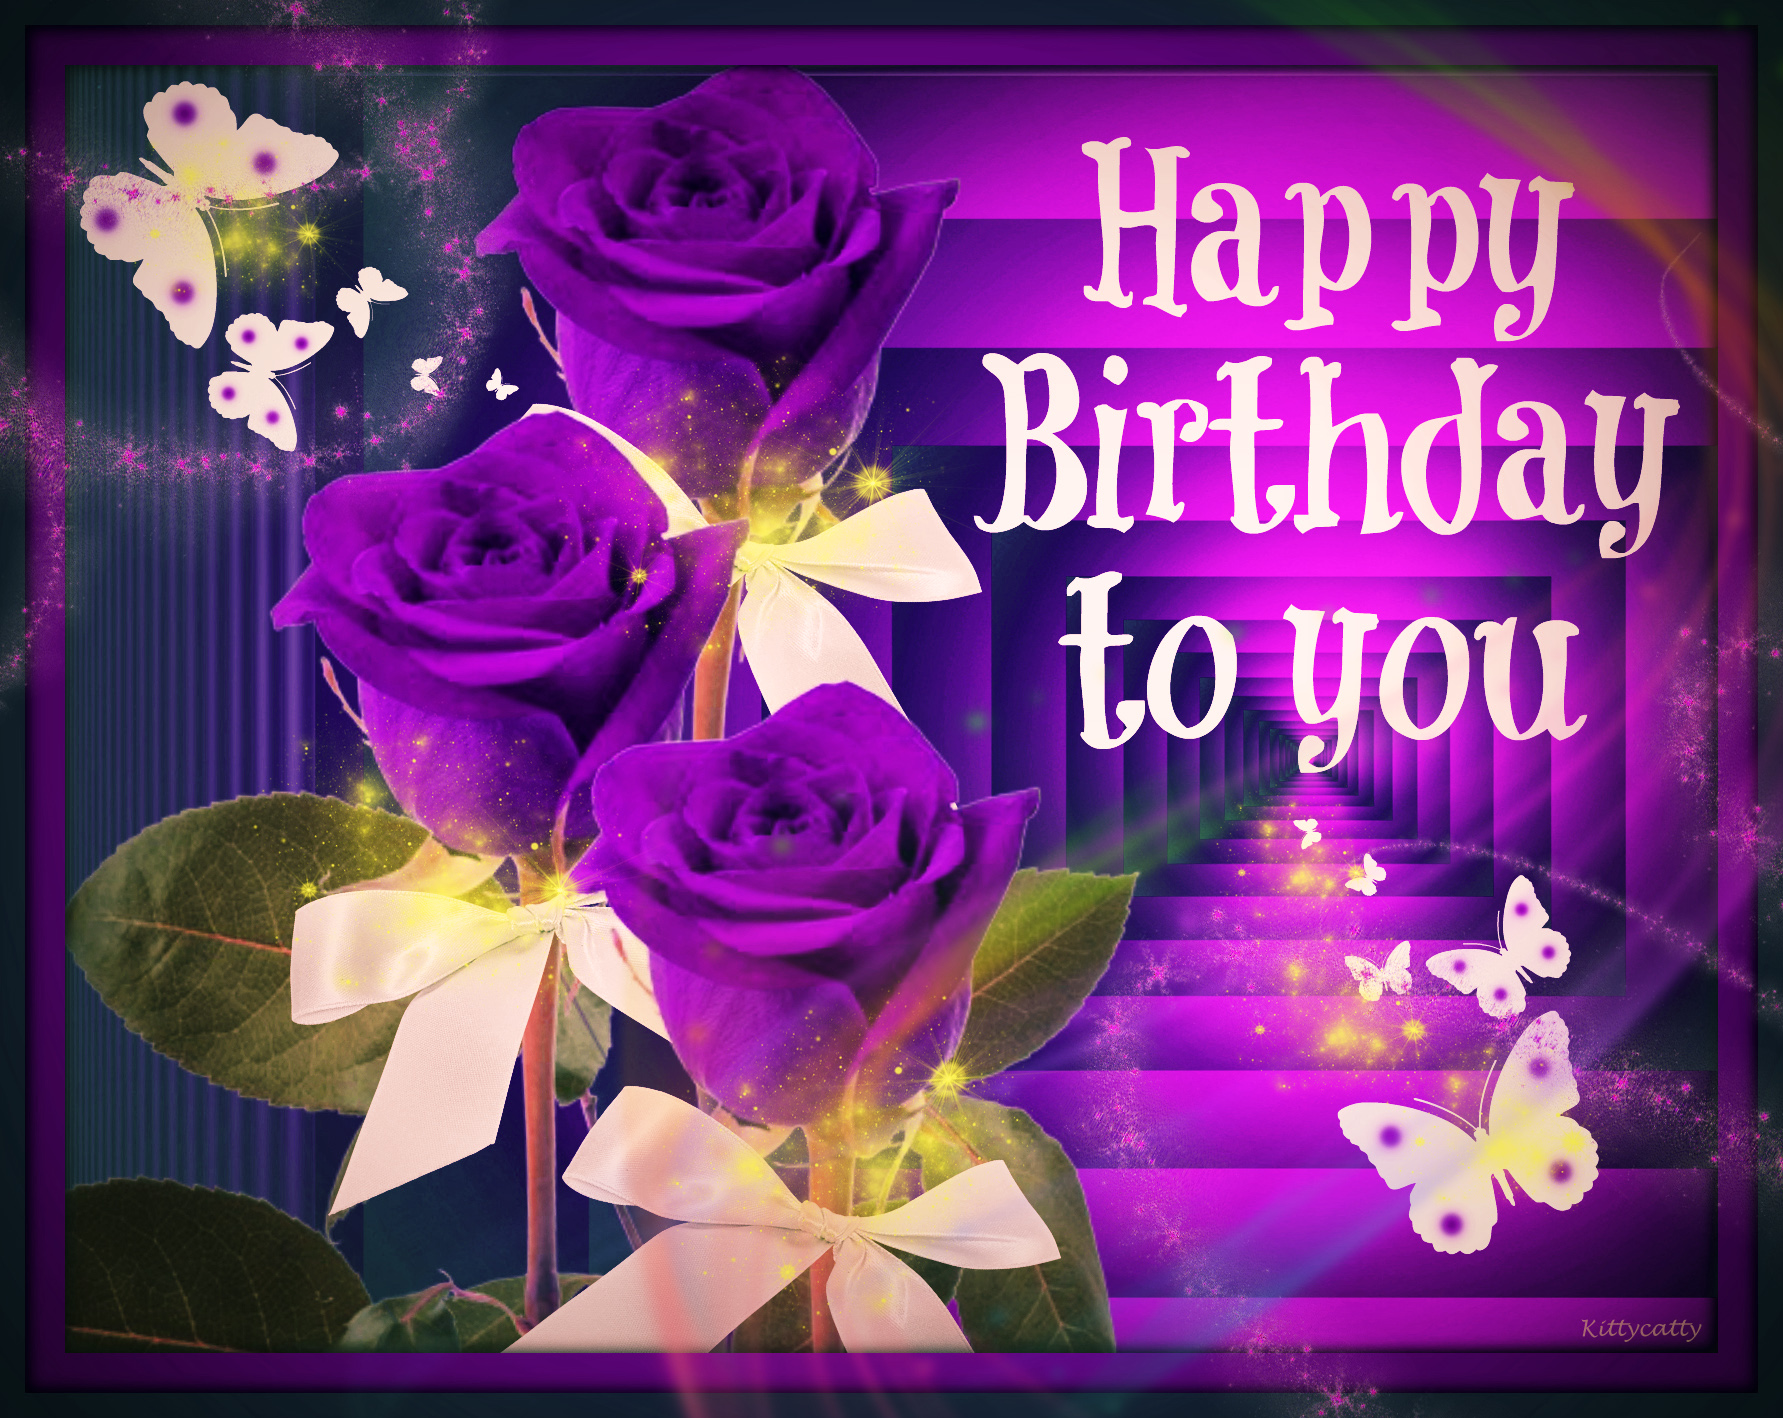 Happy Birthday Card Wallpaper ForWallpapercom 1783x1418